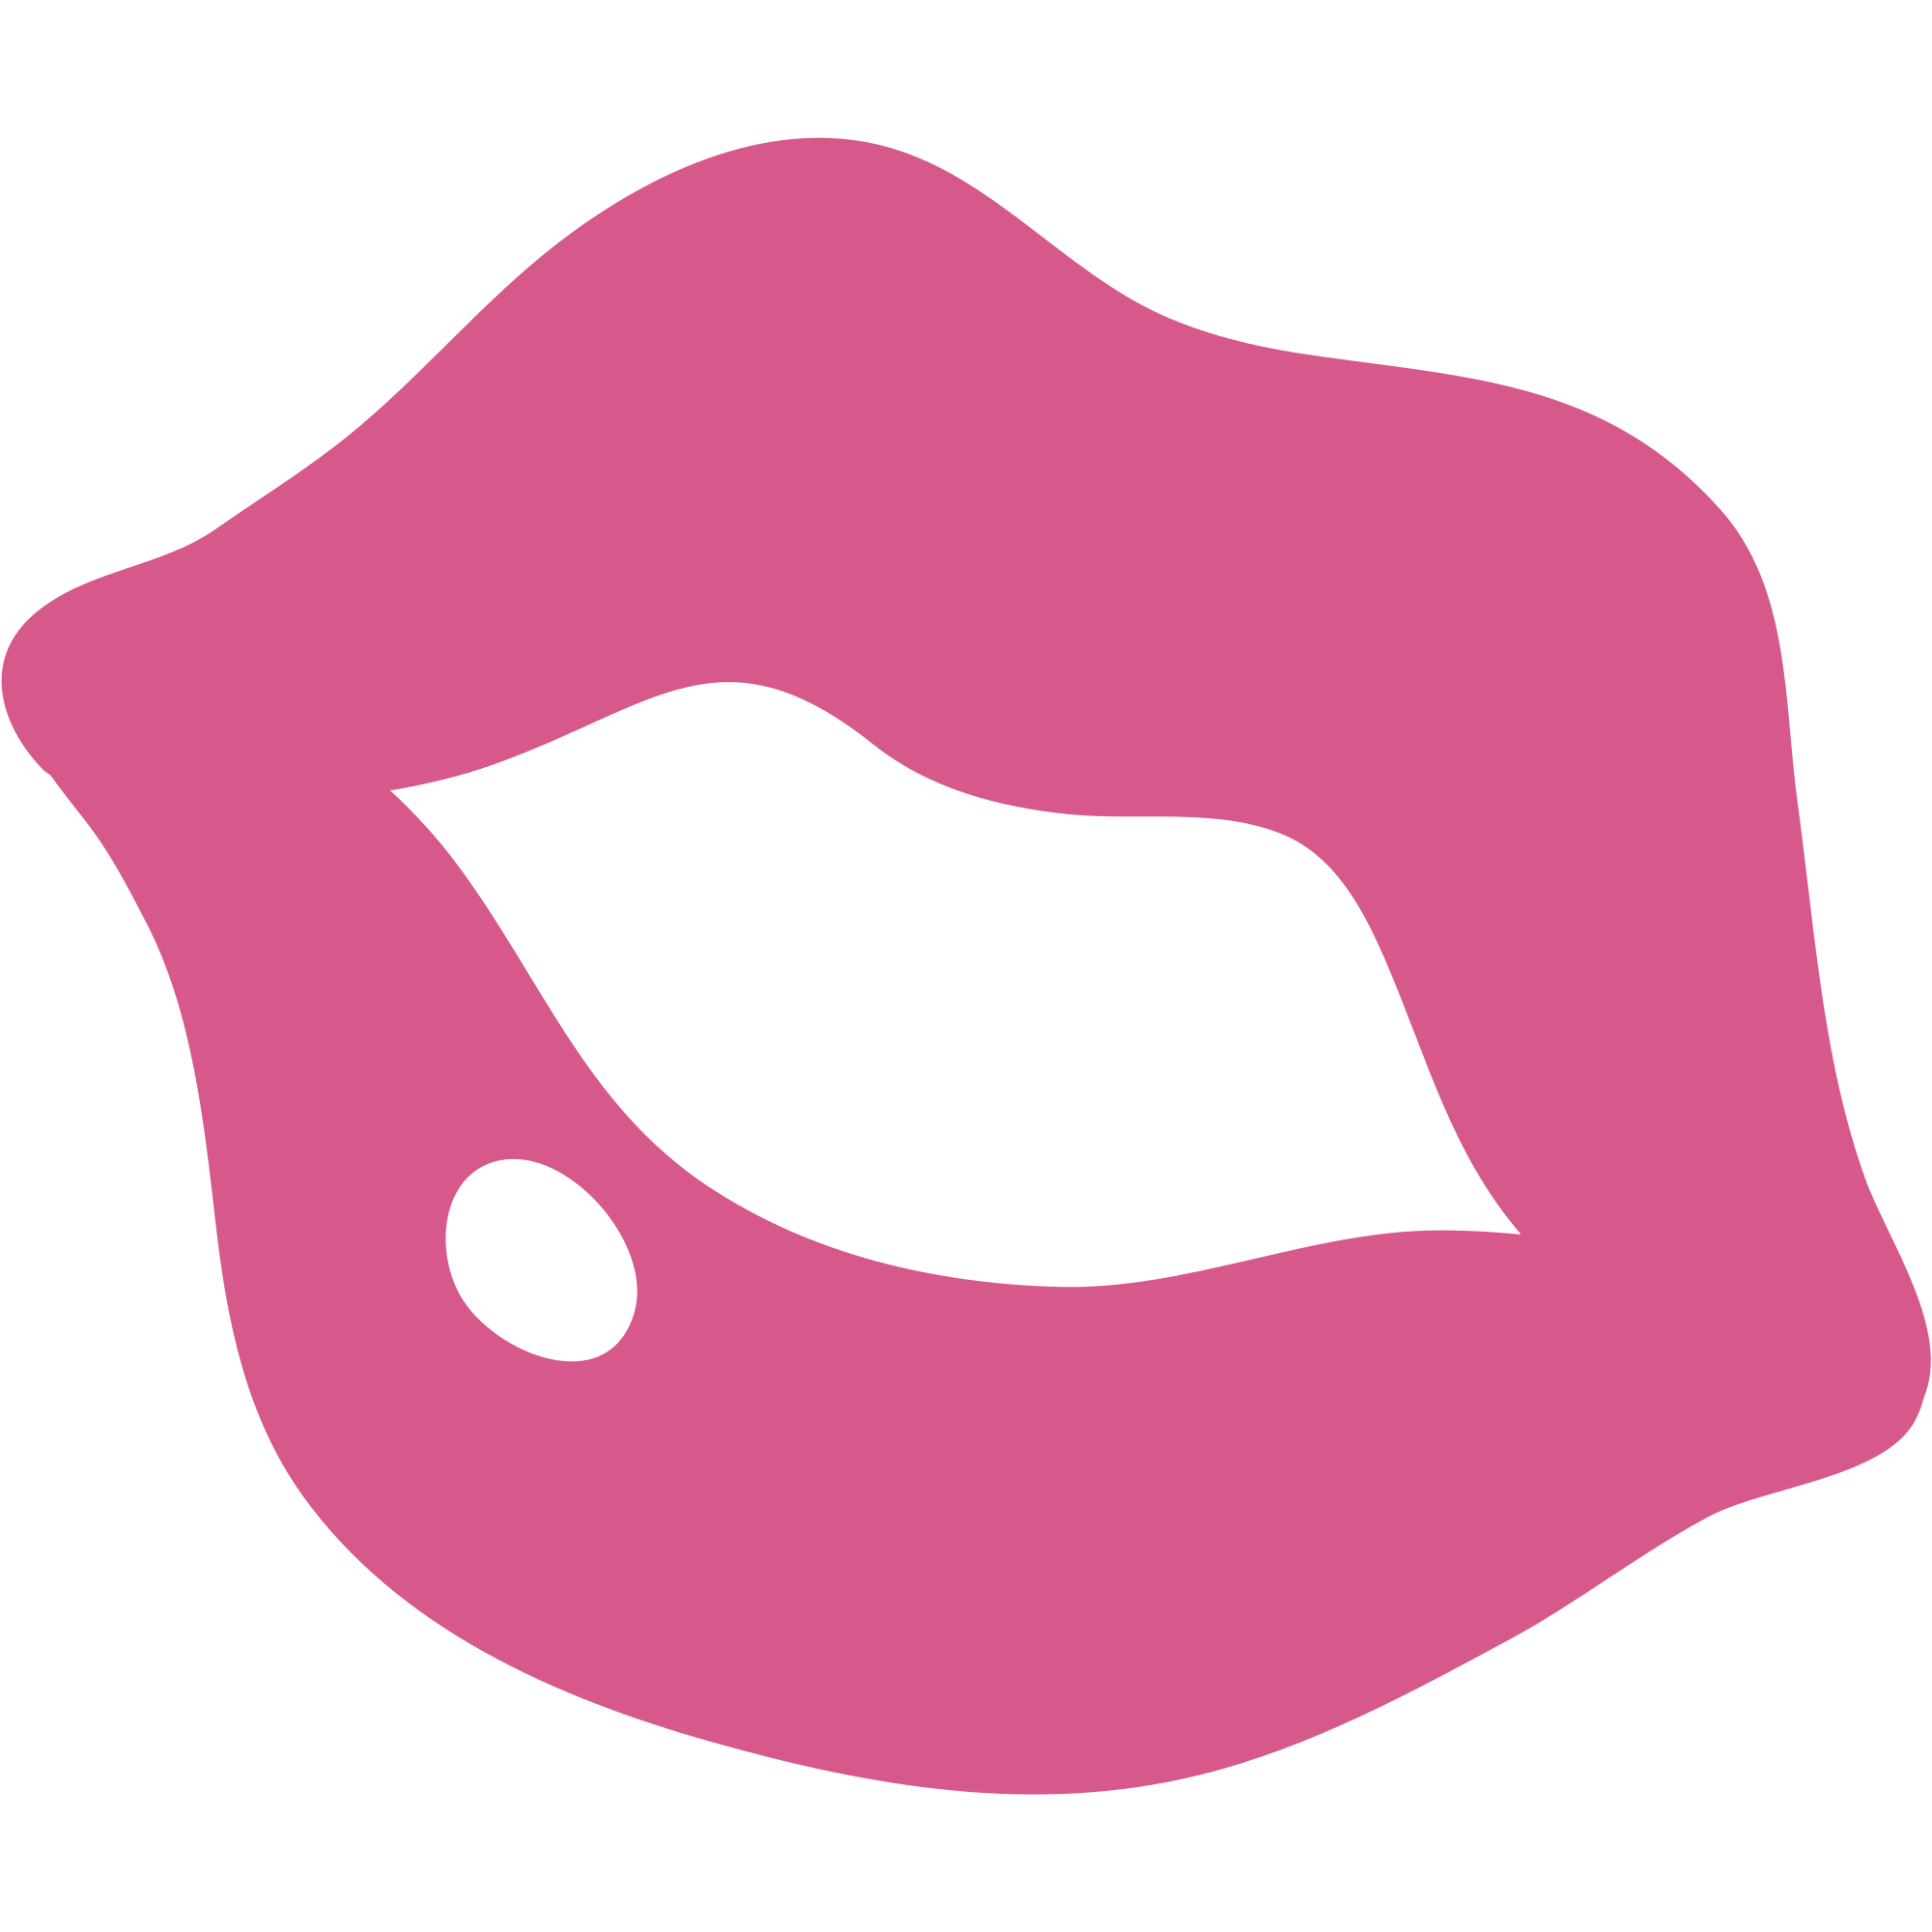 picture Kiss clipart png. Emoticon pink transparent stickpng